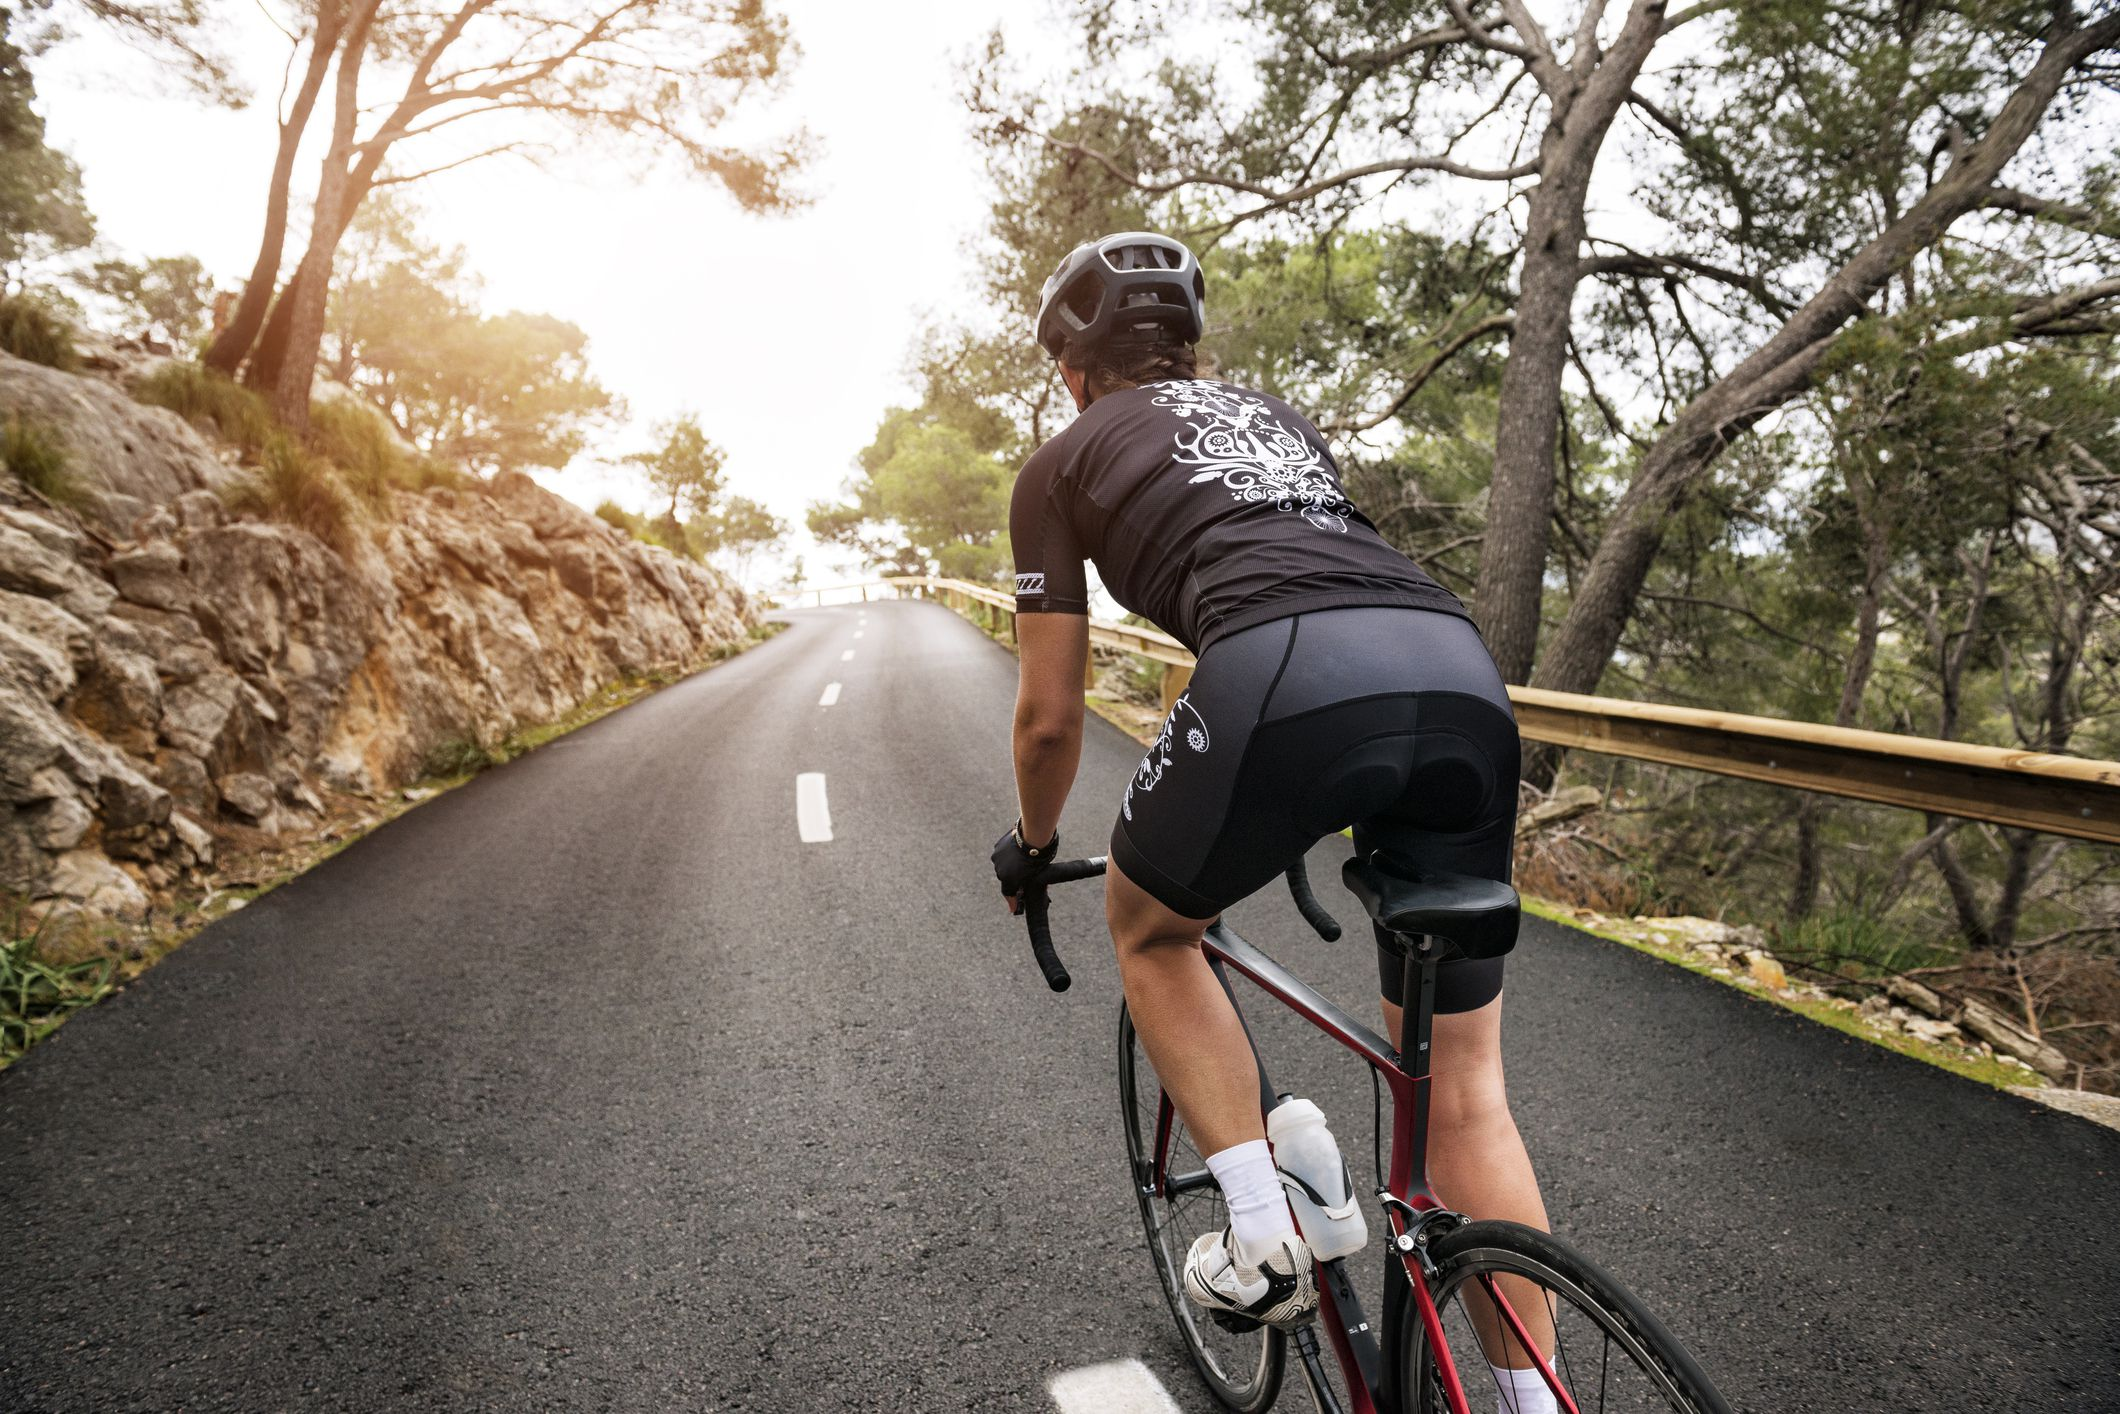 Things to Know While Riding a Bicycle?